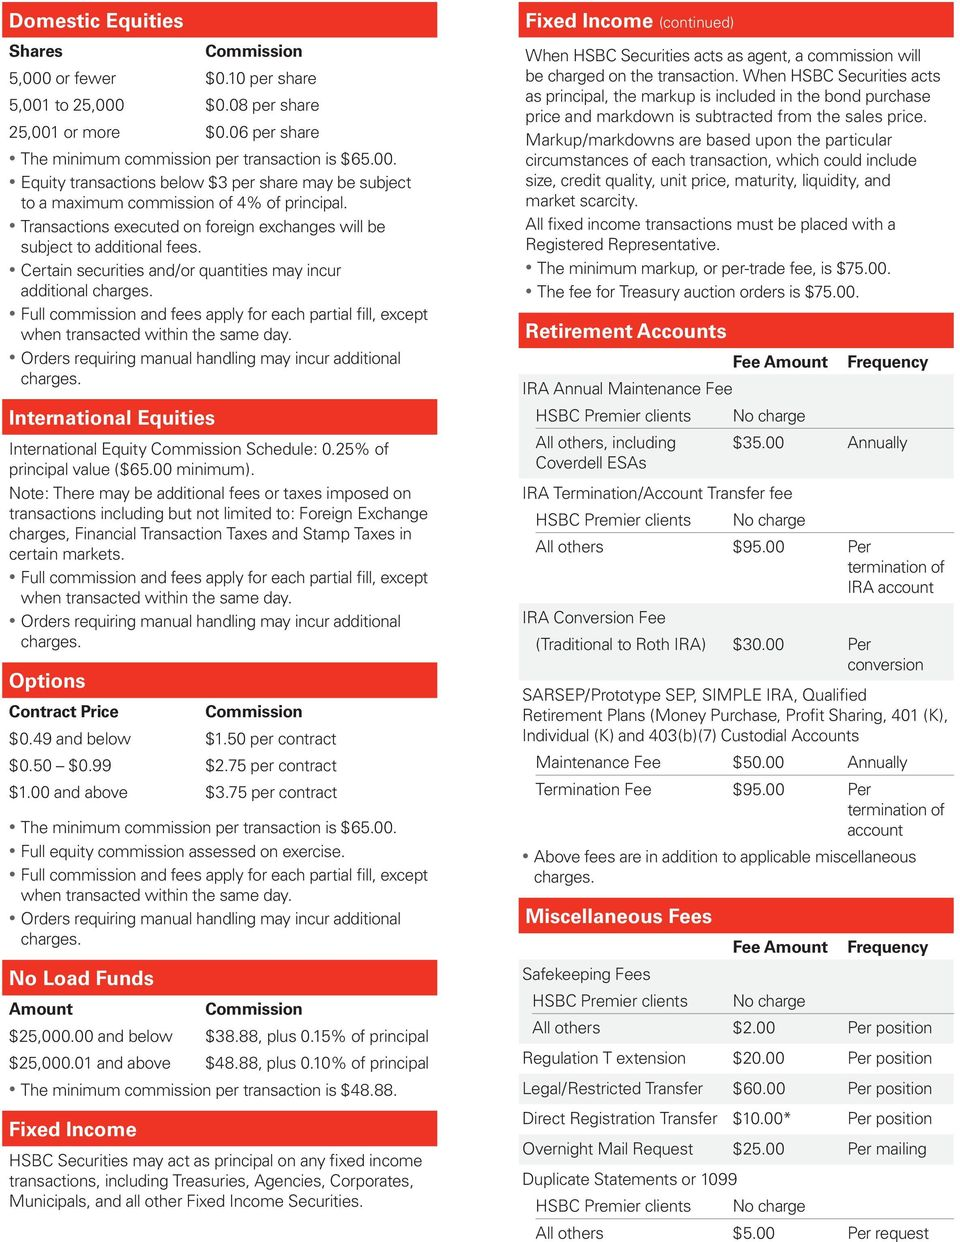 HSBC Securities Commission and Fee Schedule - PDF